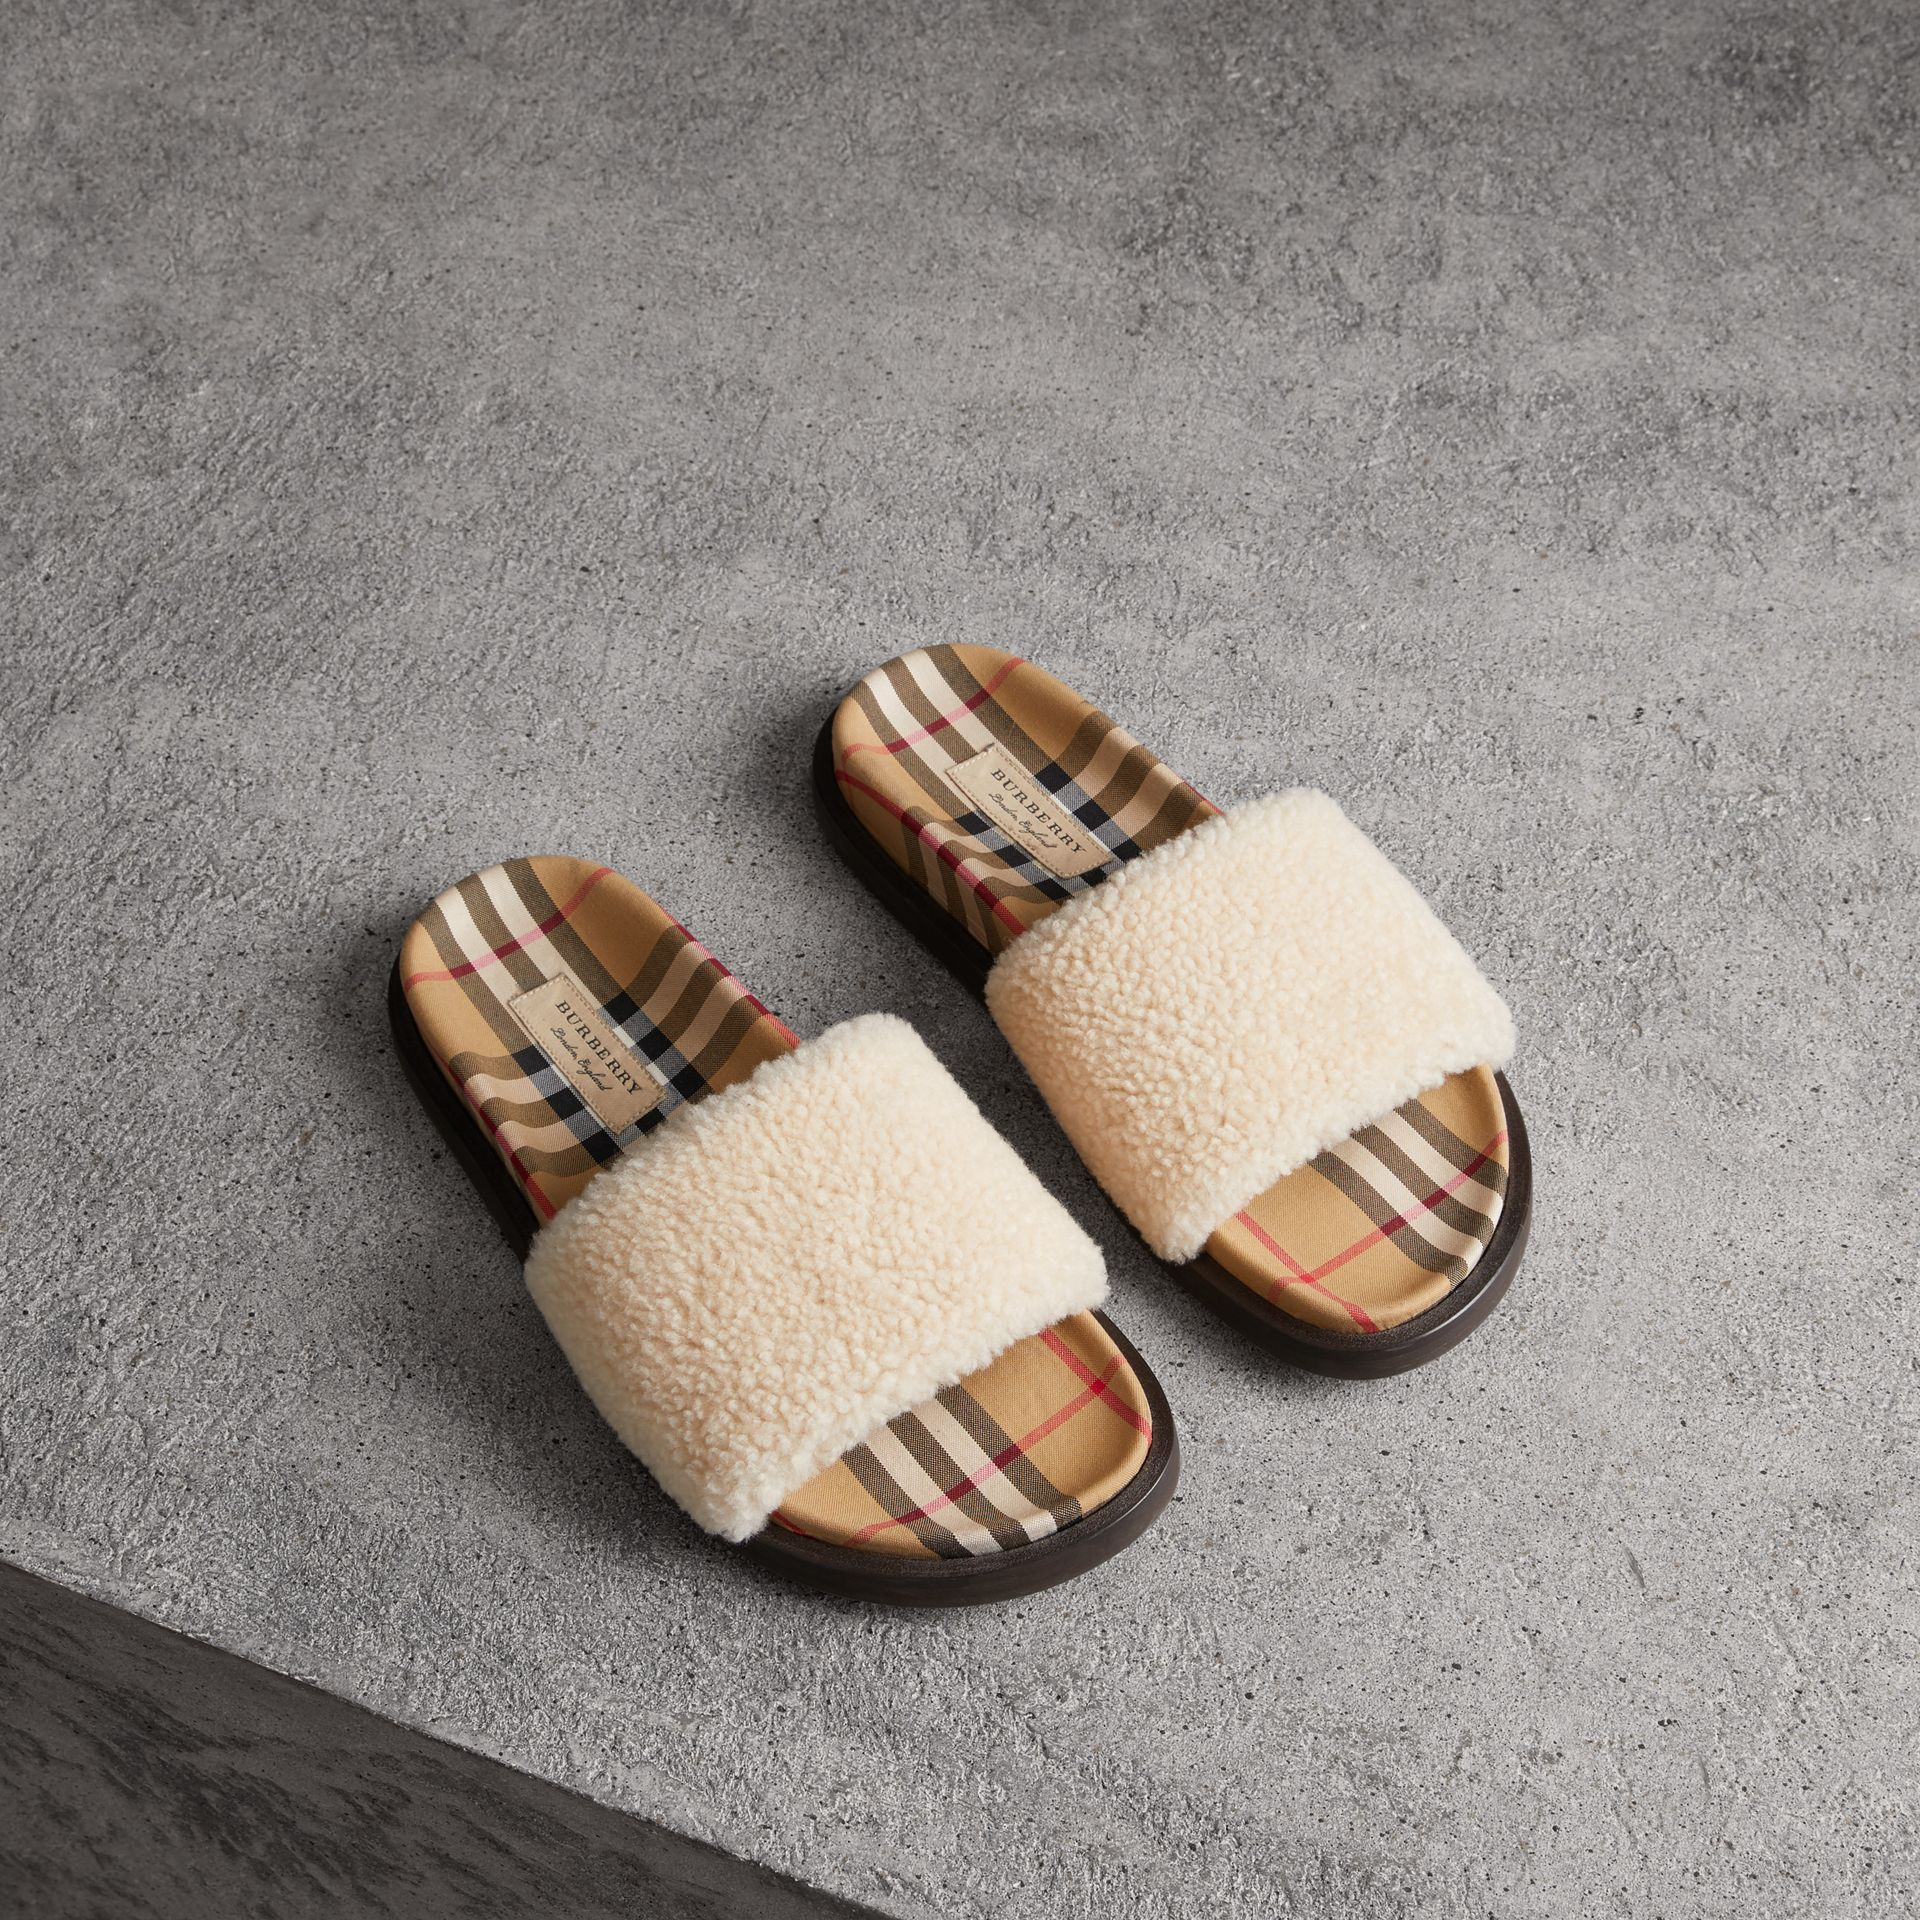 Shearling and Vintage Check Slides in Natural - Women | Burberry Australia - gallery image 0